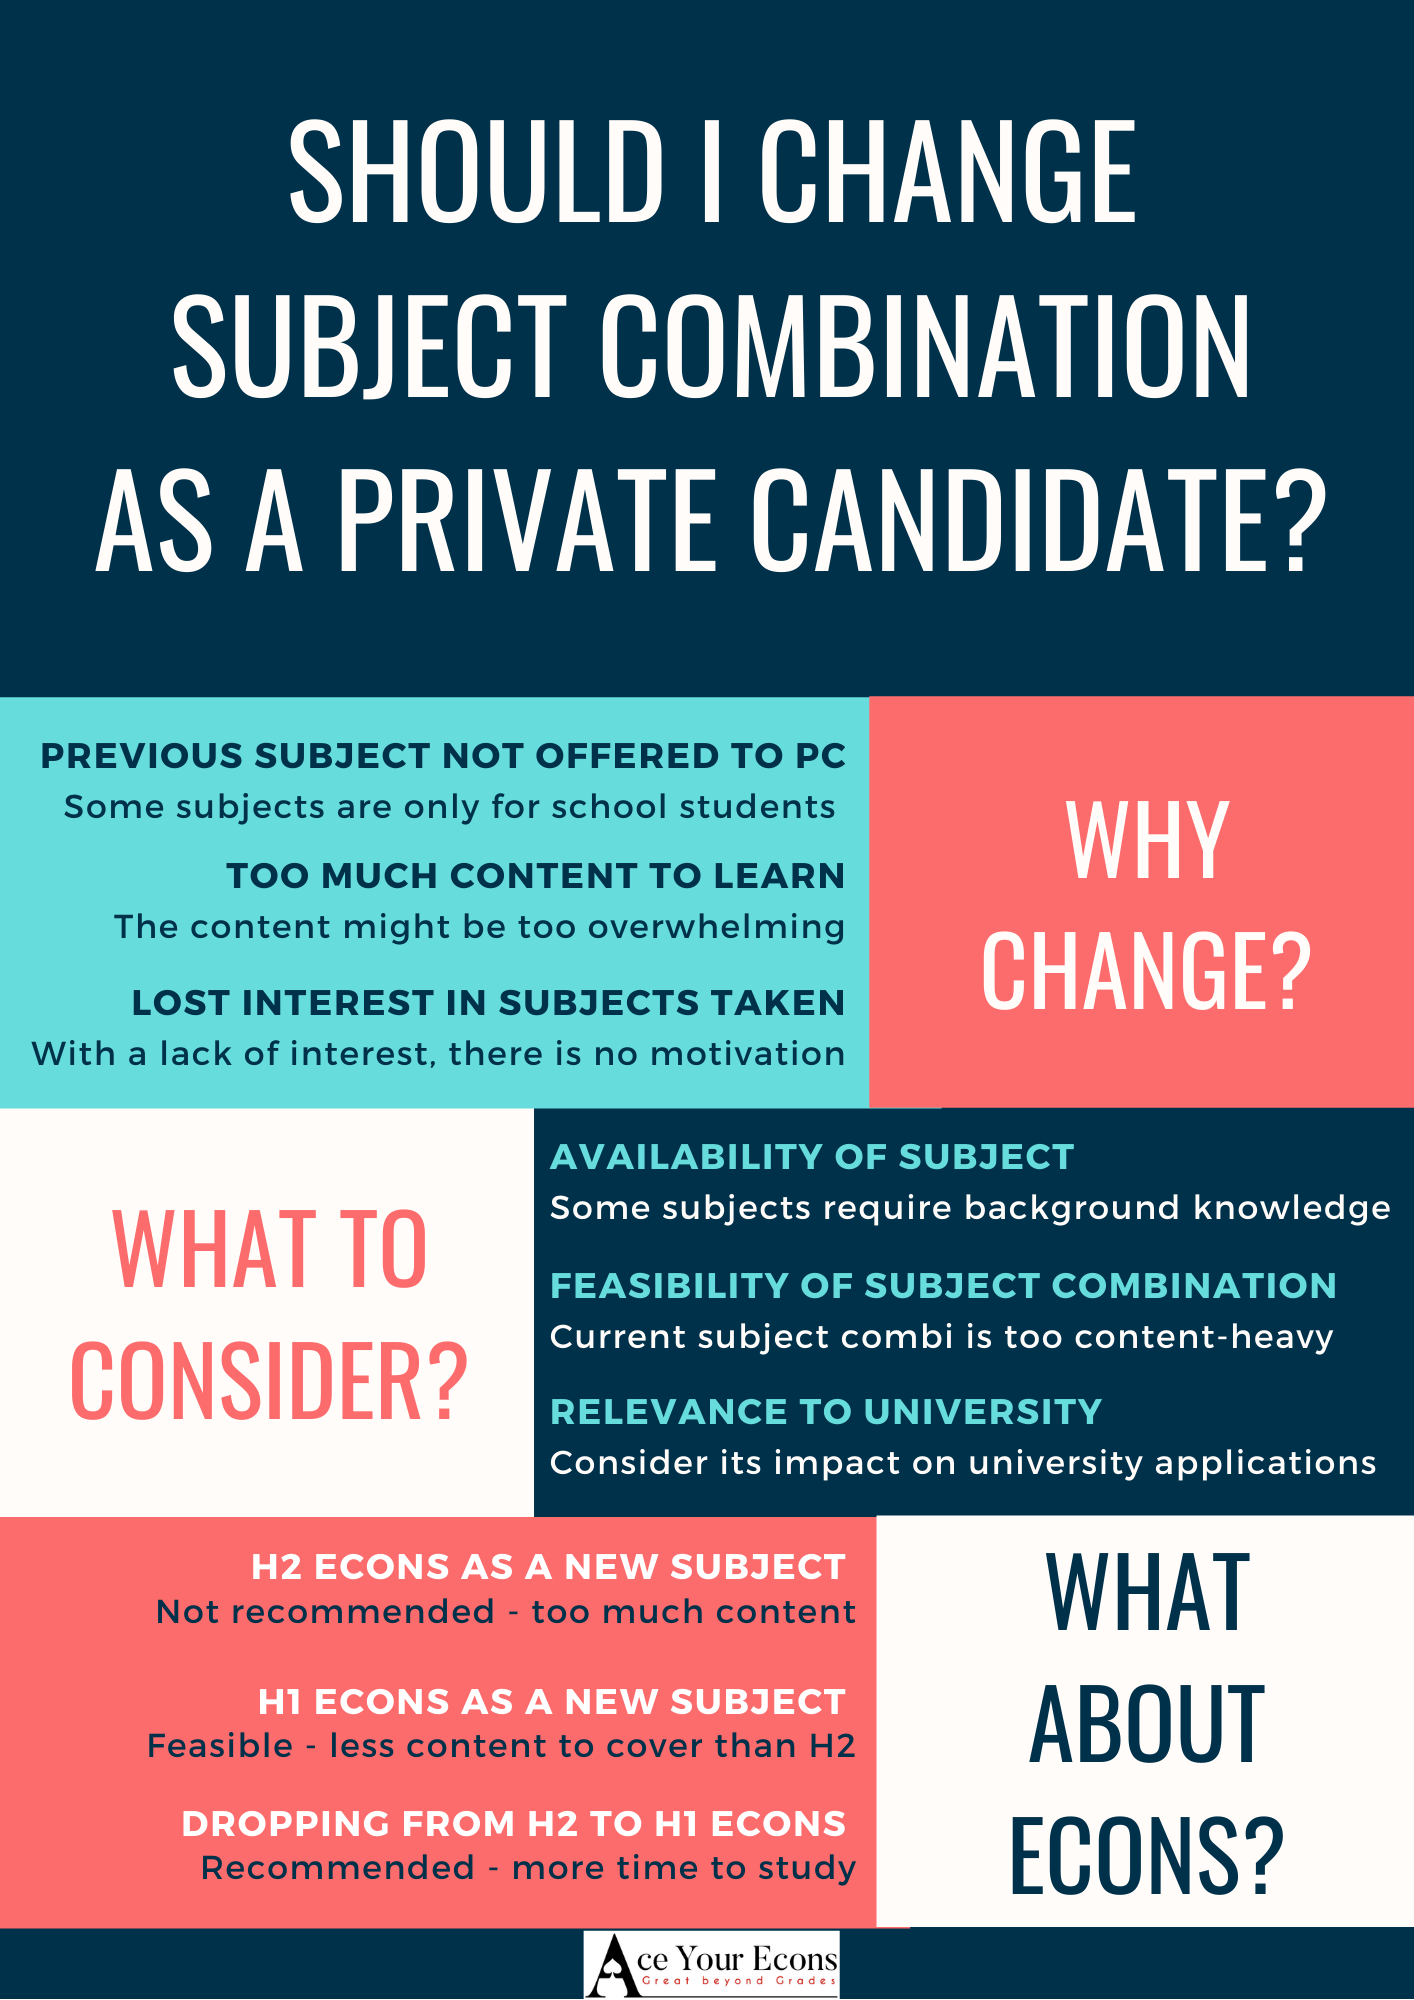 Should I Change Subject Combination as a Private Candidate?